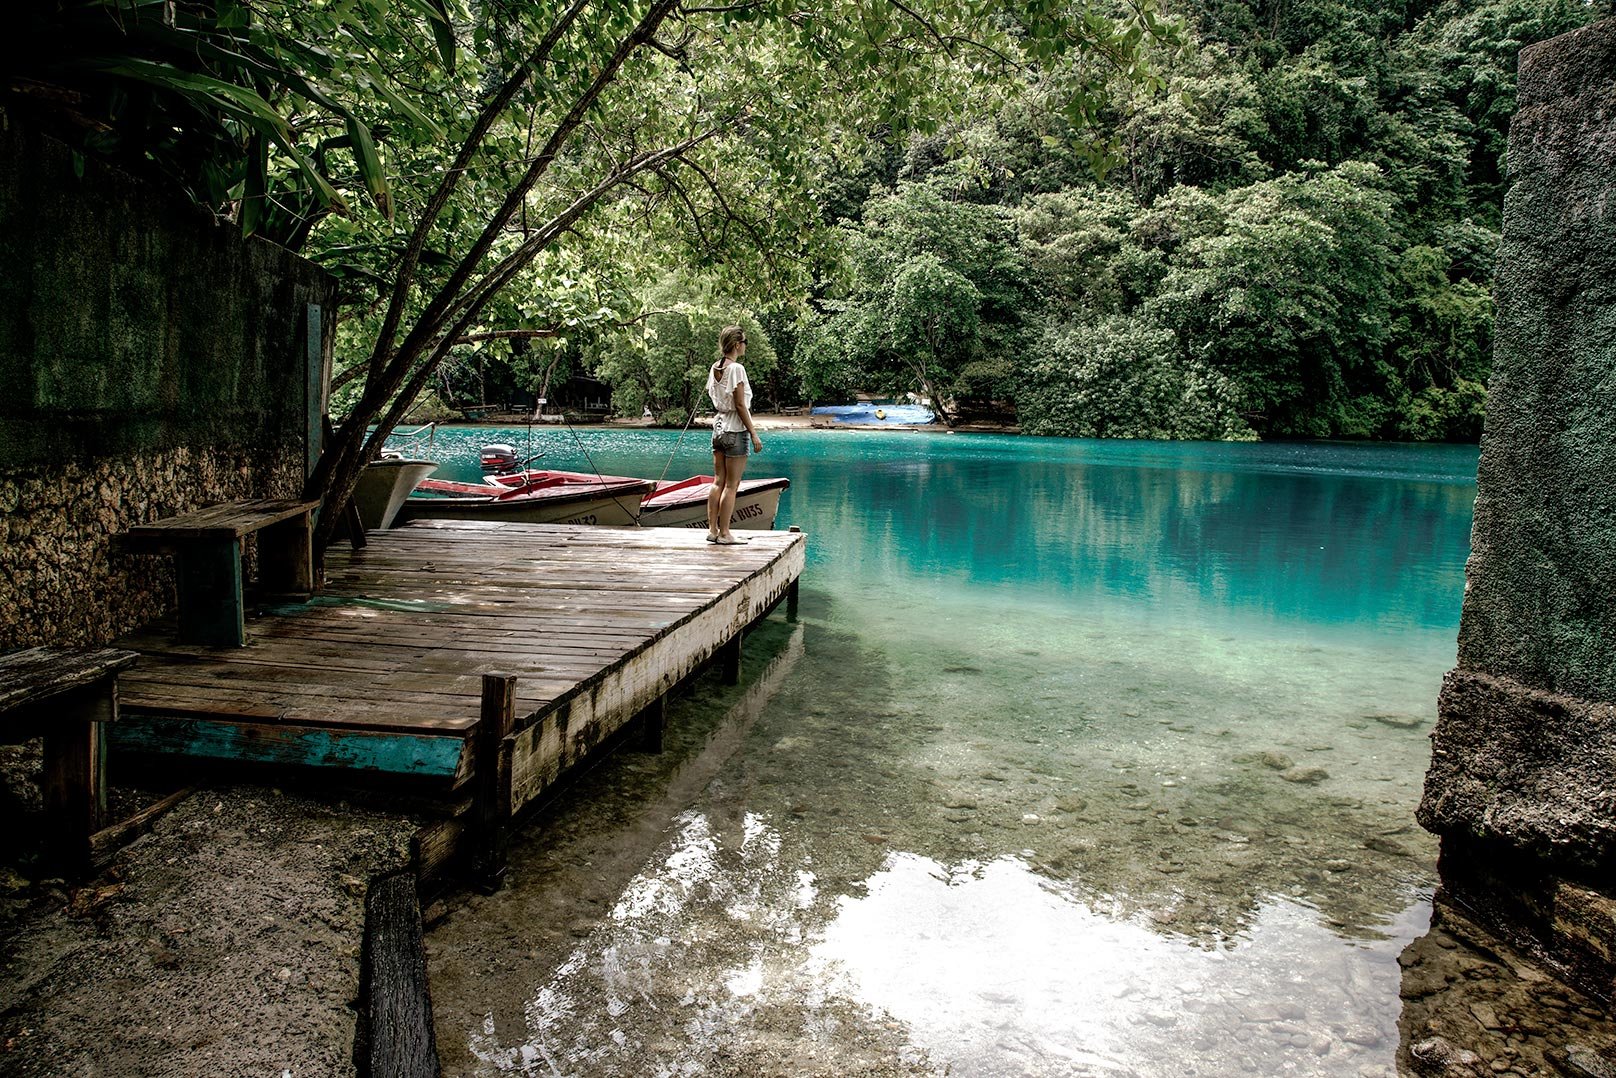 A Guide to Port Antonio in Jamaica. Portland Parish offers everything from the Blue Lagoon to Frenchman's Cove. The natural beauty of the place is astounding. The photo diary explores the lush coast and my stay at Trident Hotel.